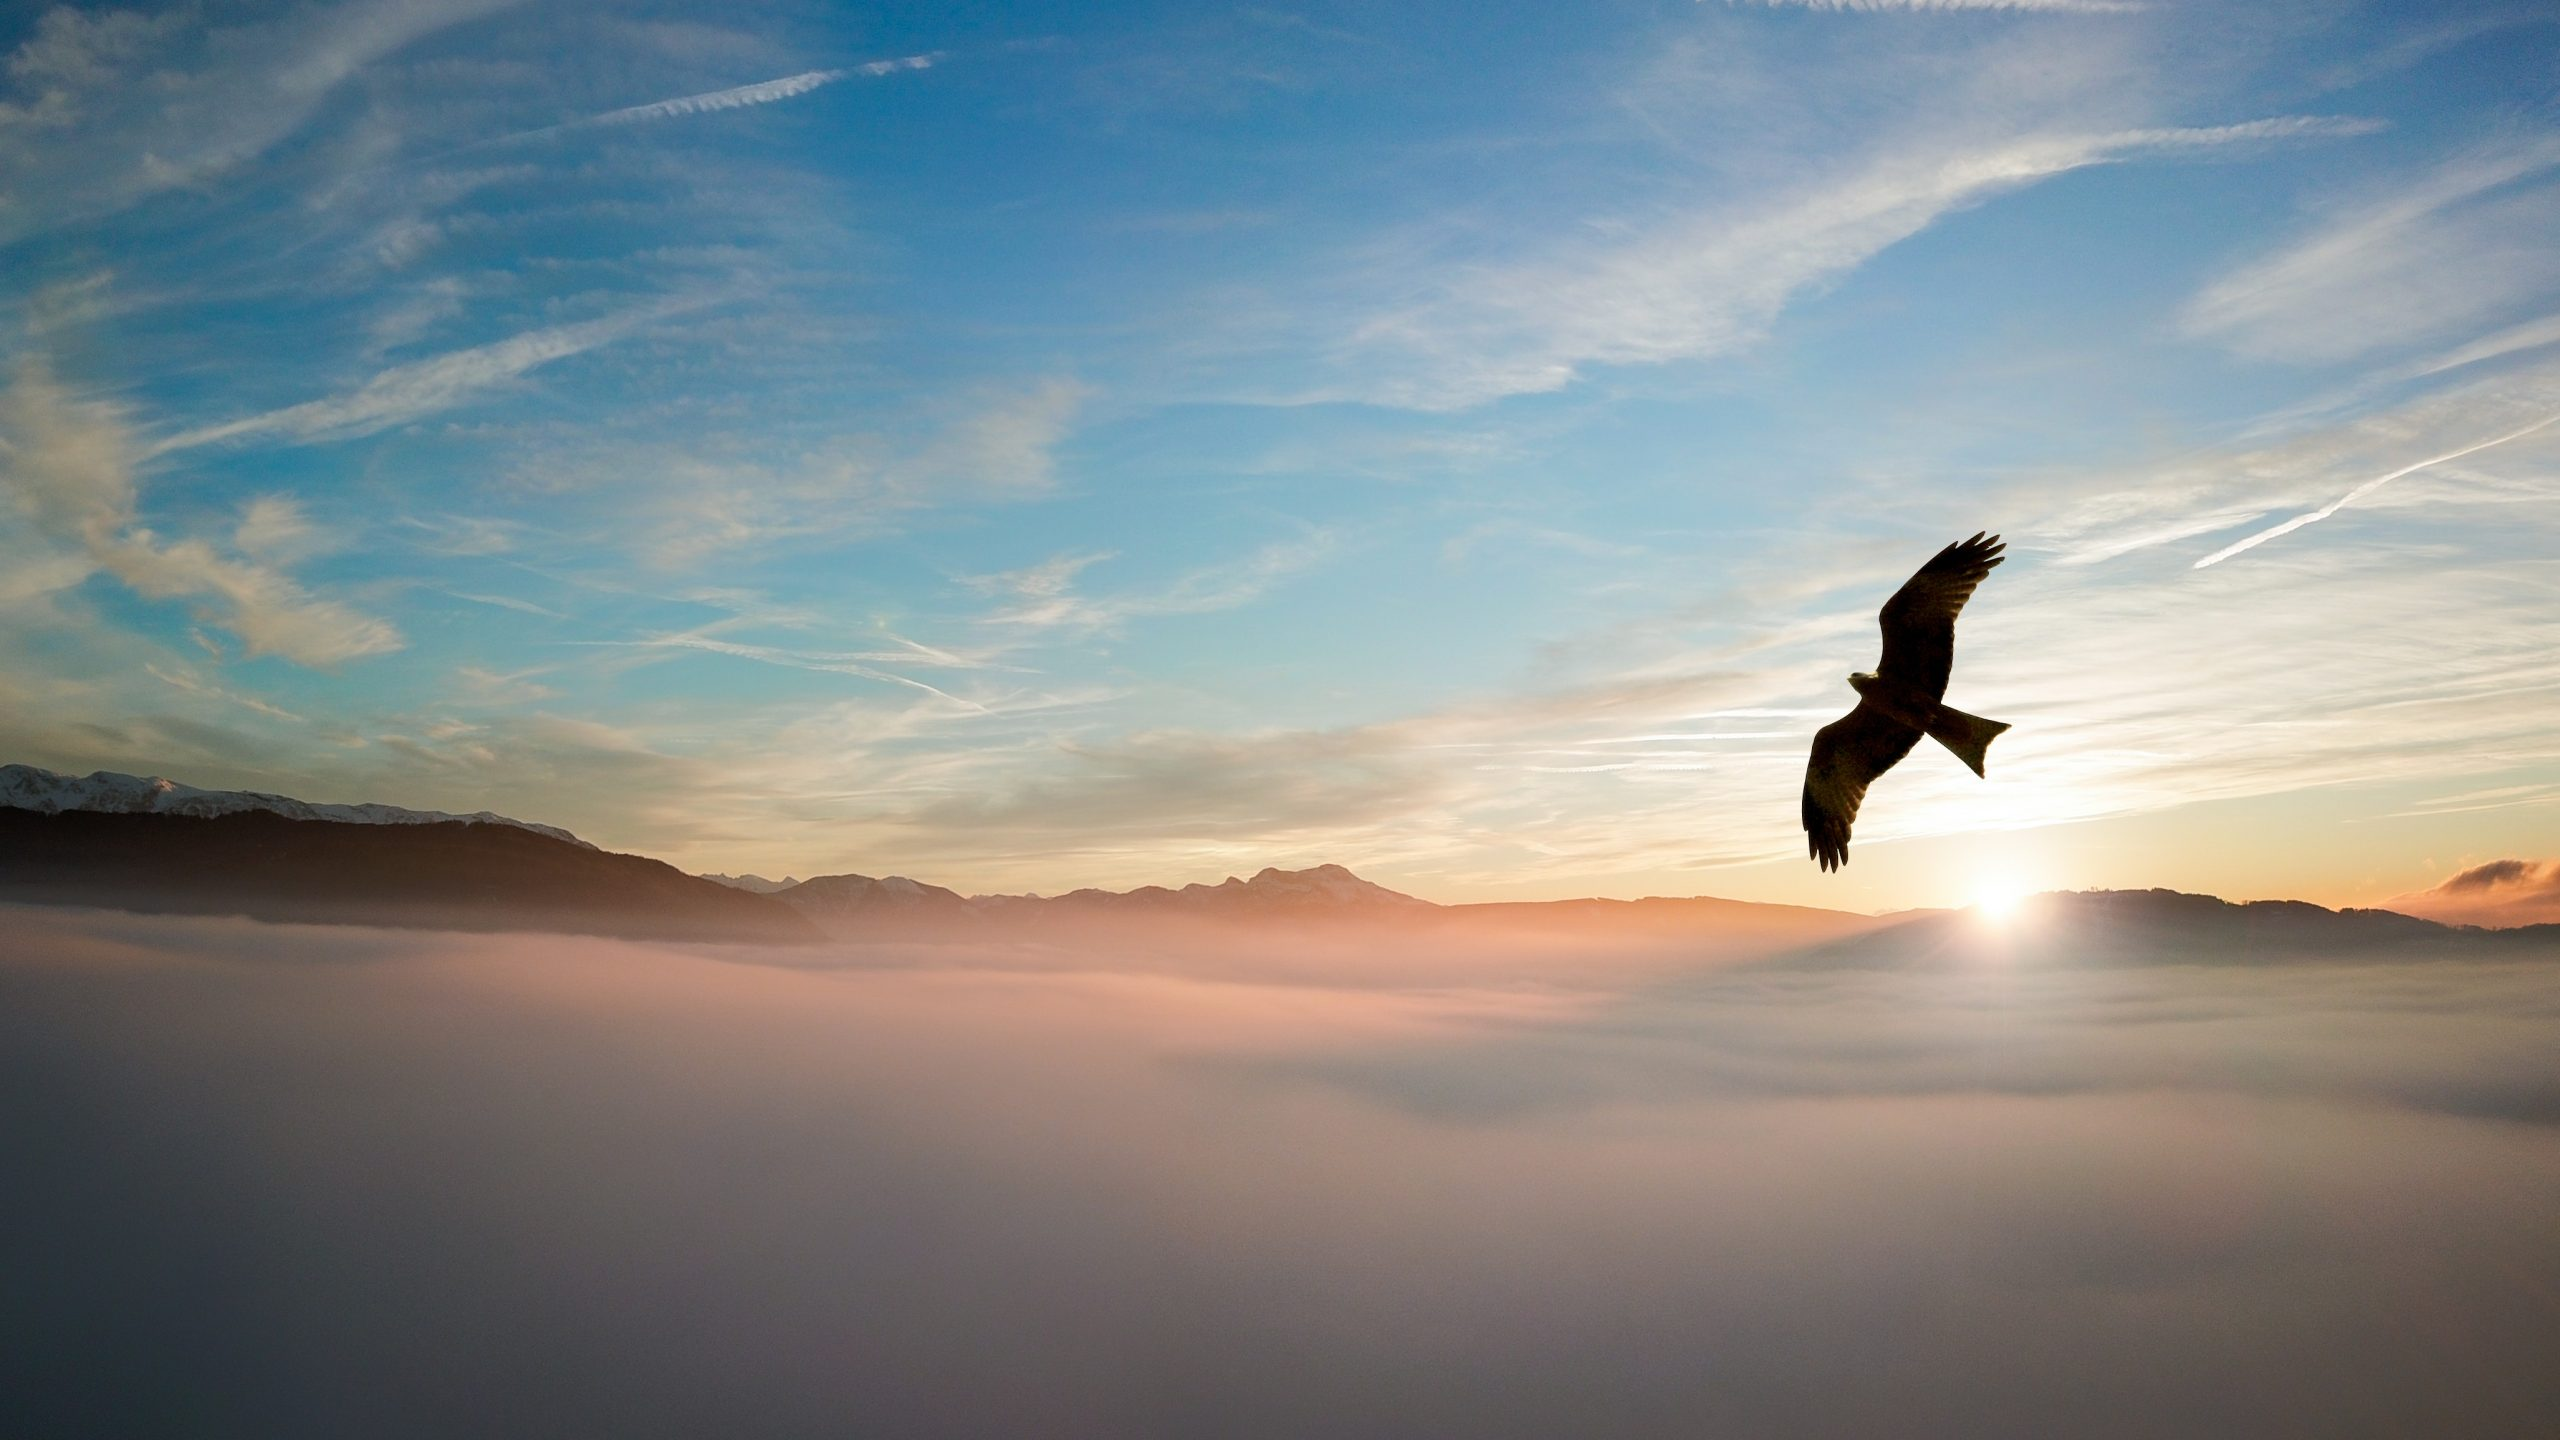 an image of an eagle soarin above the clouds